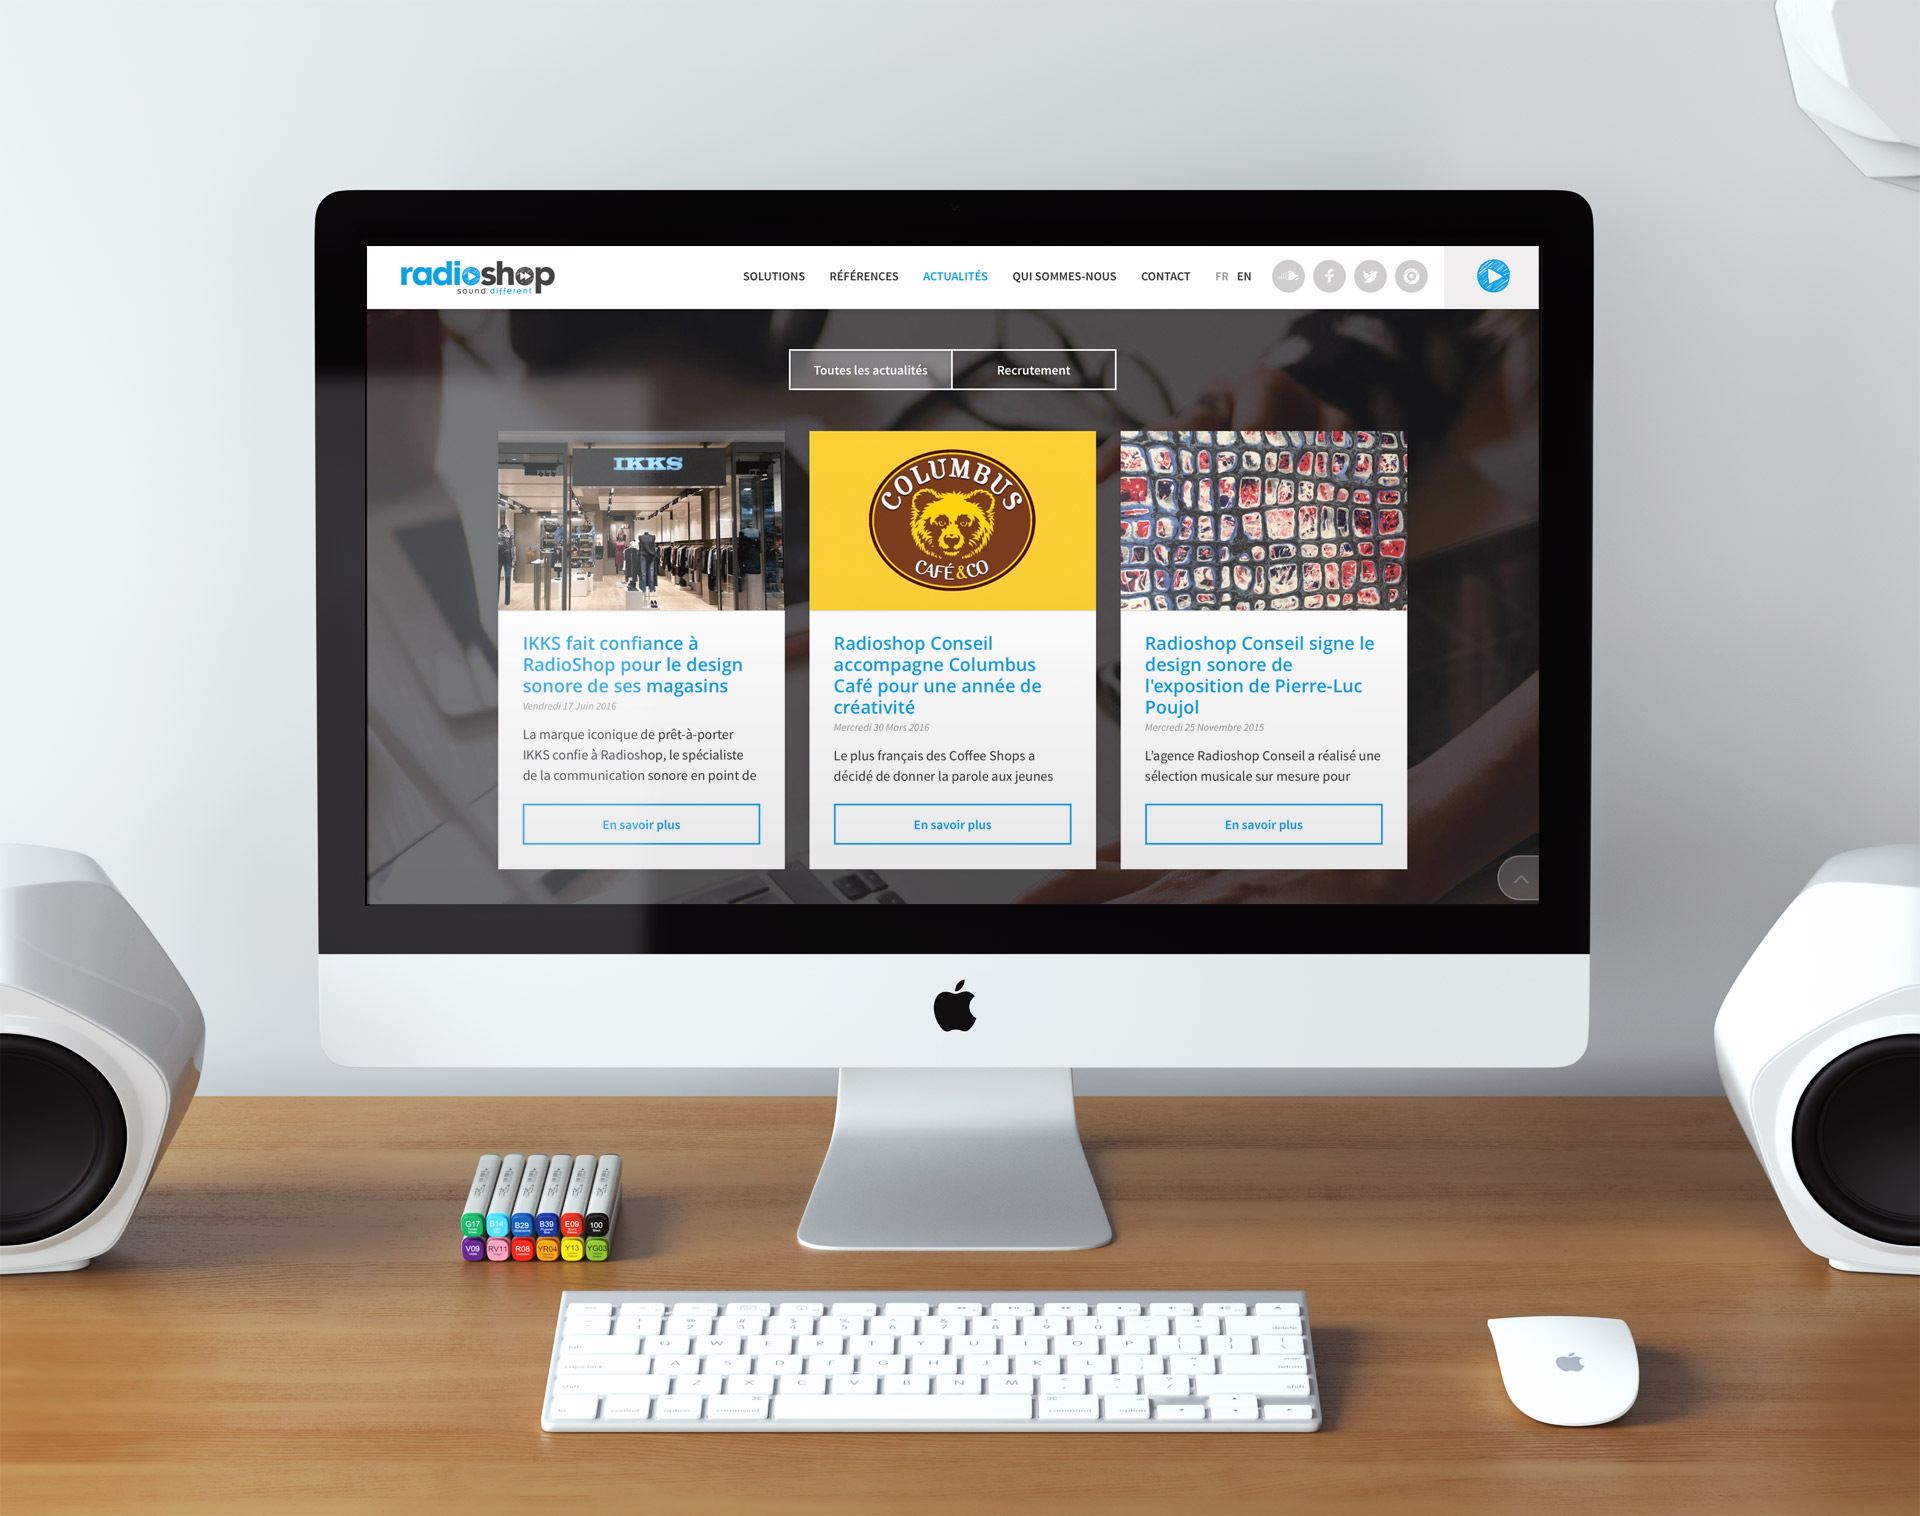 radioshop-creation-site-web-responsive-design-graphiste-montpellier-alexis-cretin-3